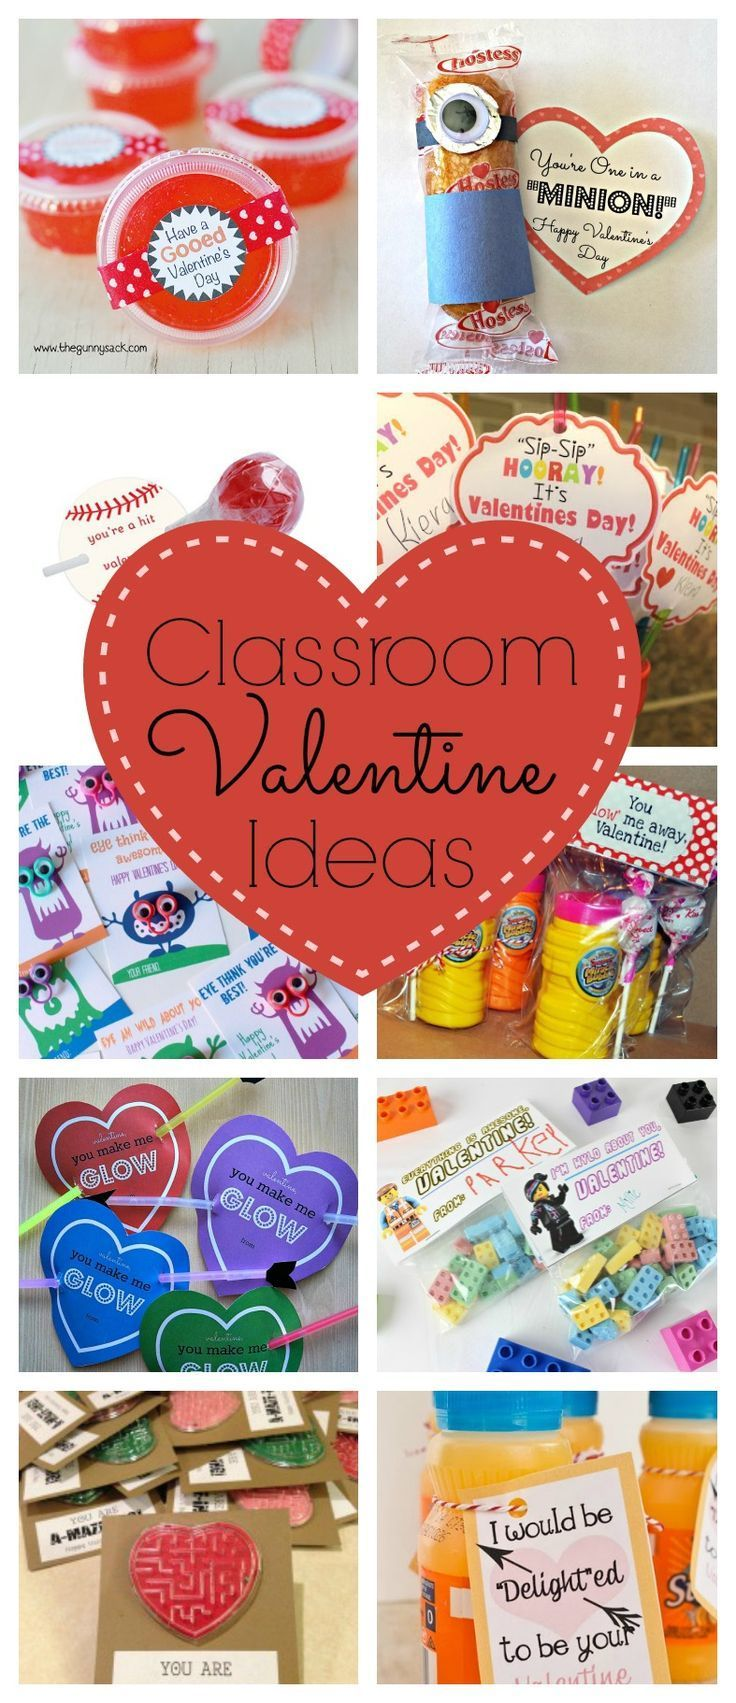 Classroom Valentine Ideas...Every year I am on the look out for fun and creative Classroom Valentine Ideas. Here are a few of my favorite ones I have seen this year.